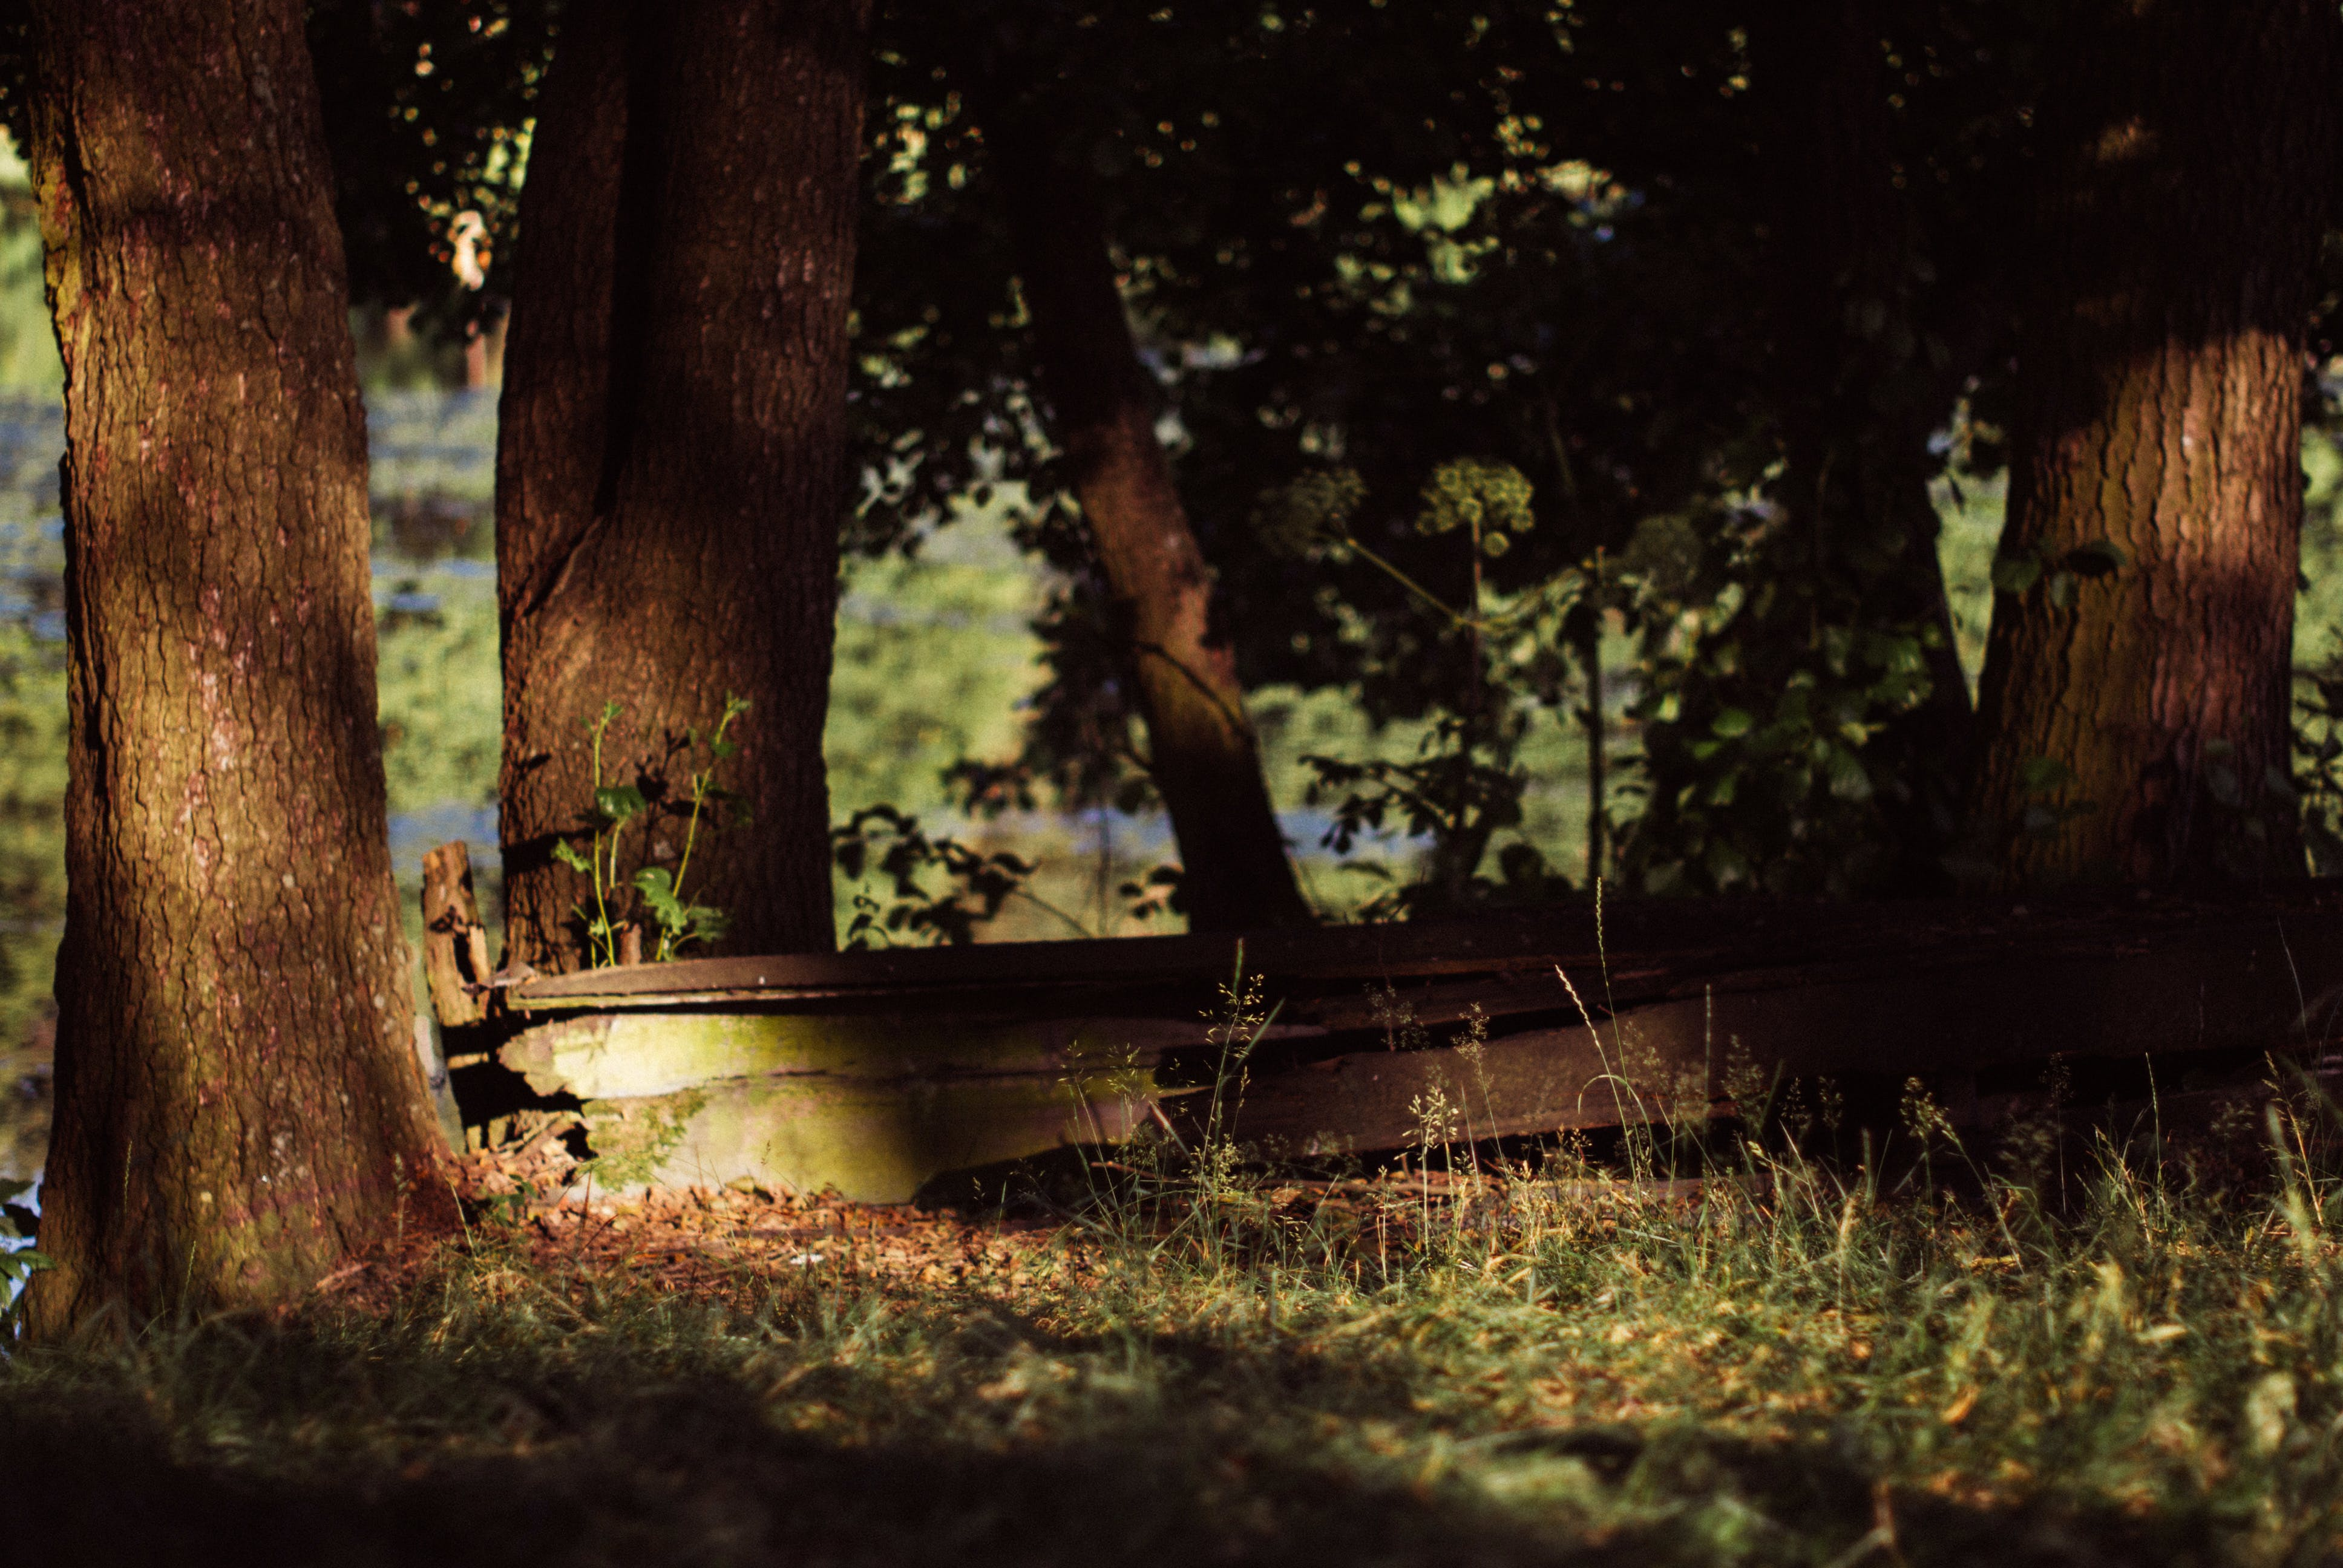 Free stock photo of boat, trees, river, old